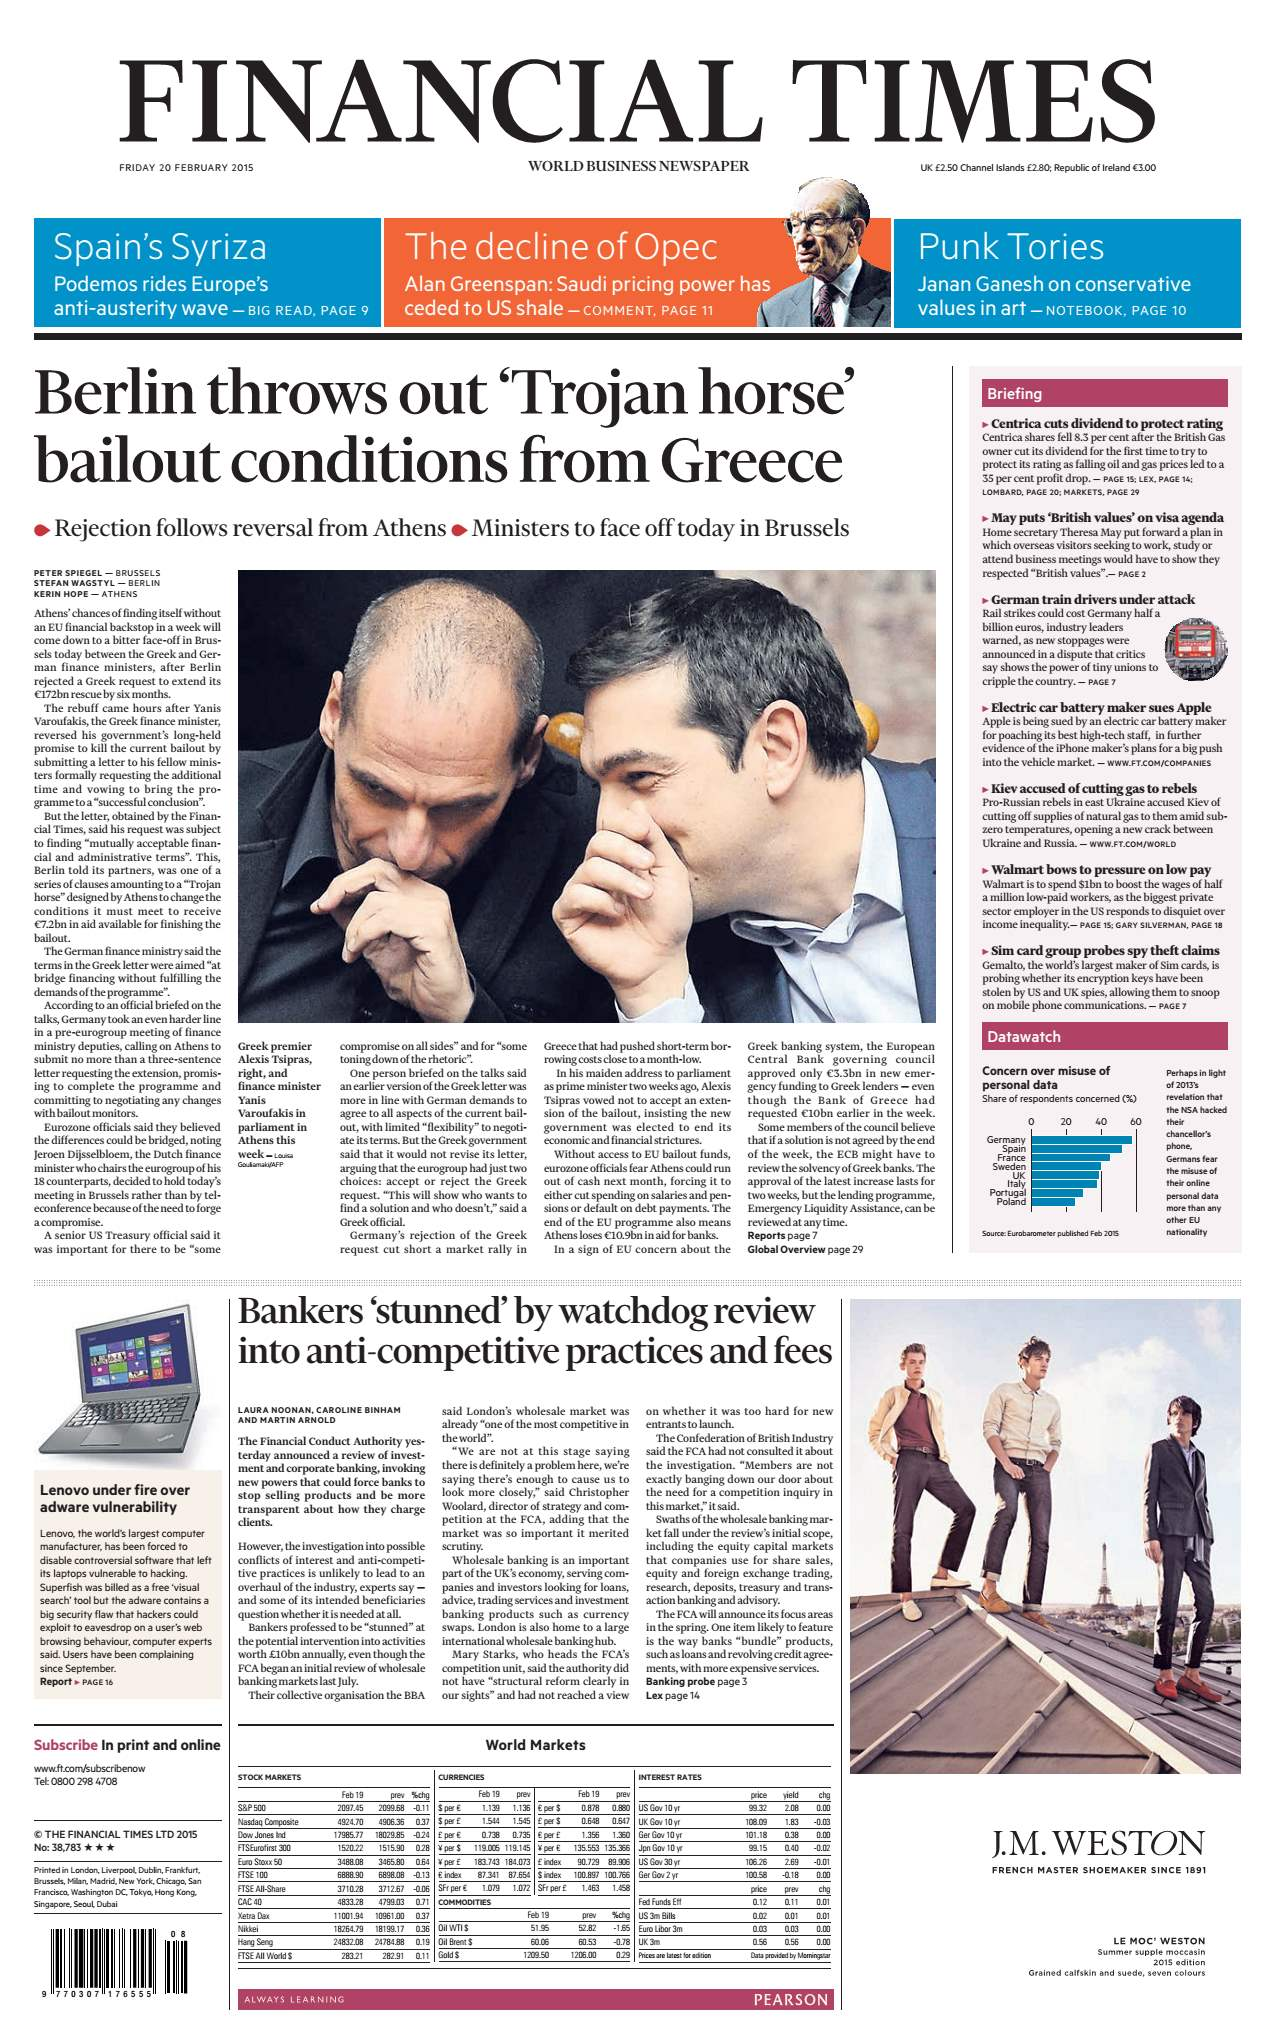 Financial Times UK  February 20, 2015 free download